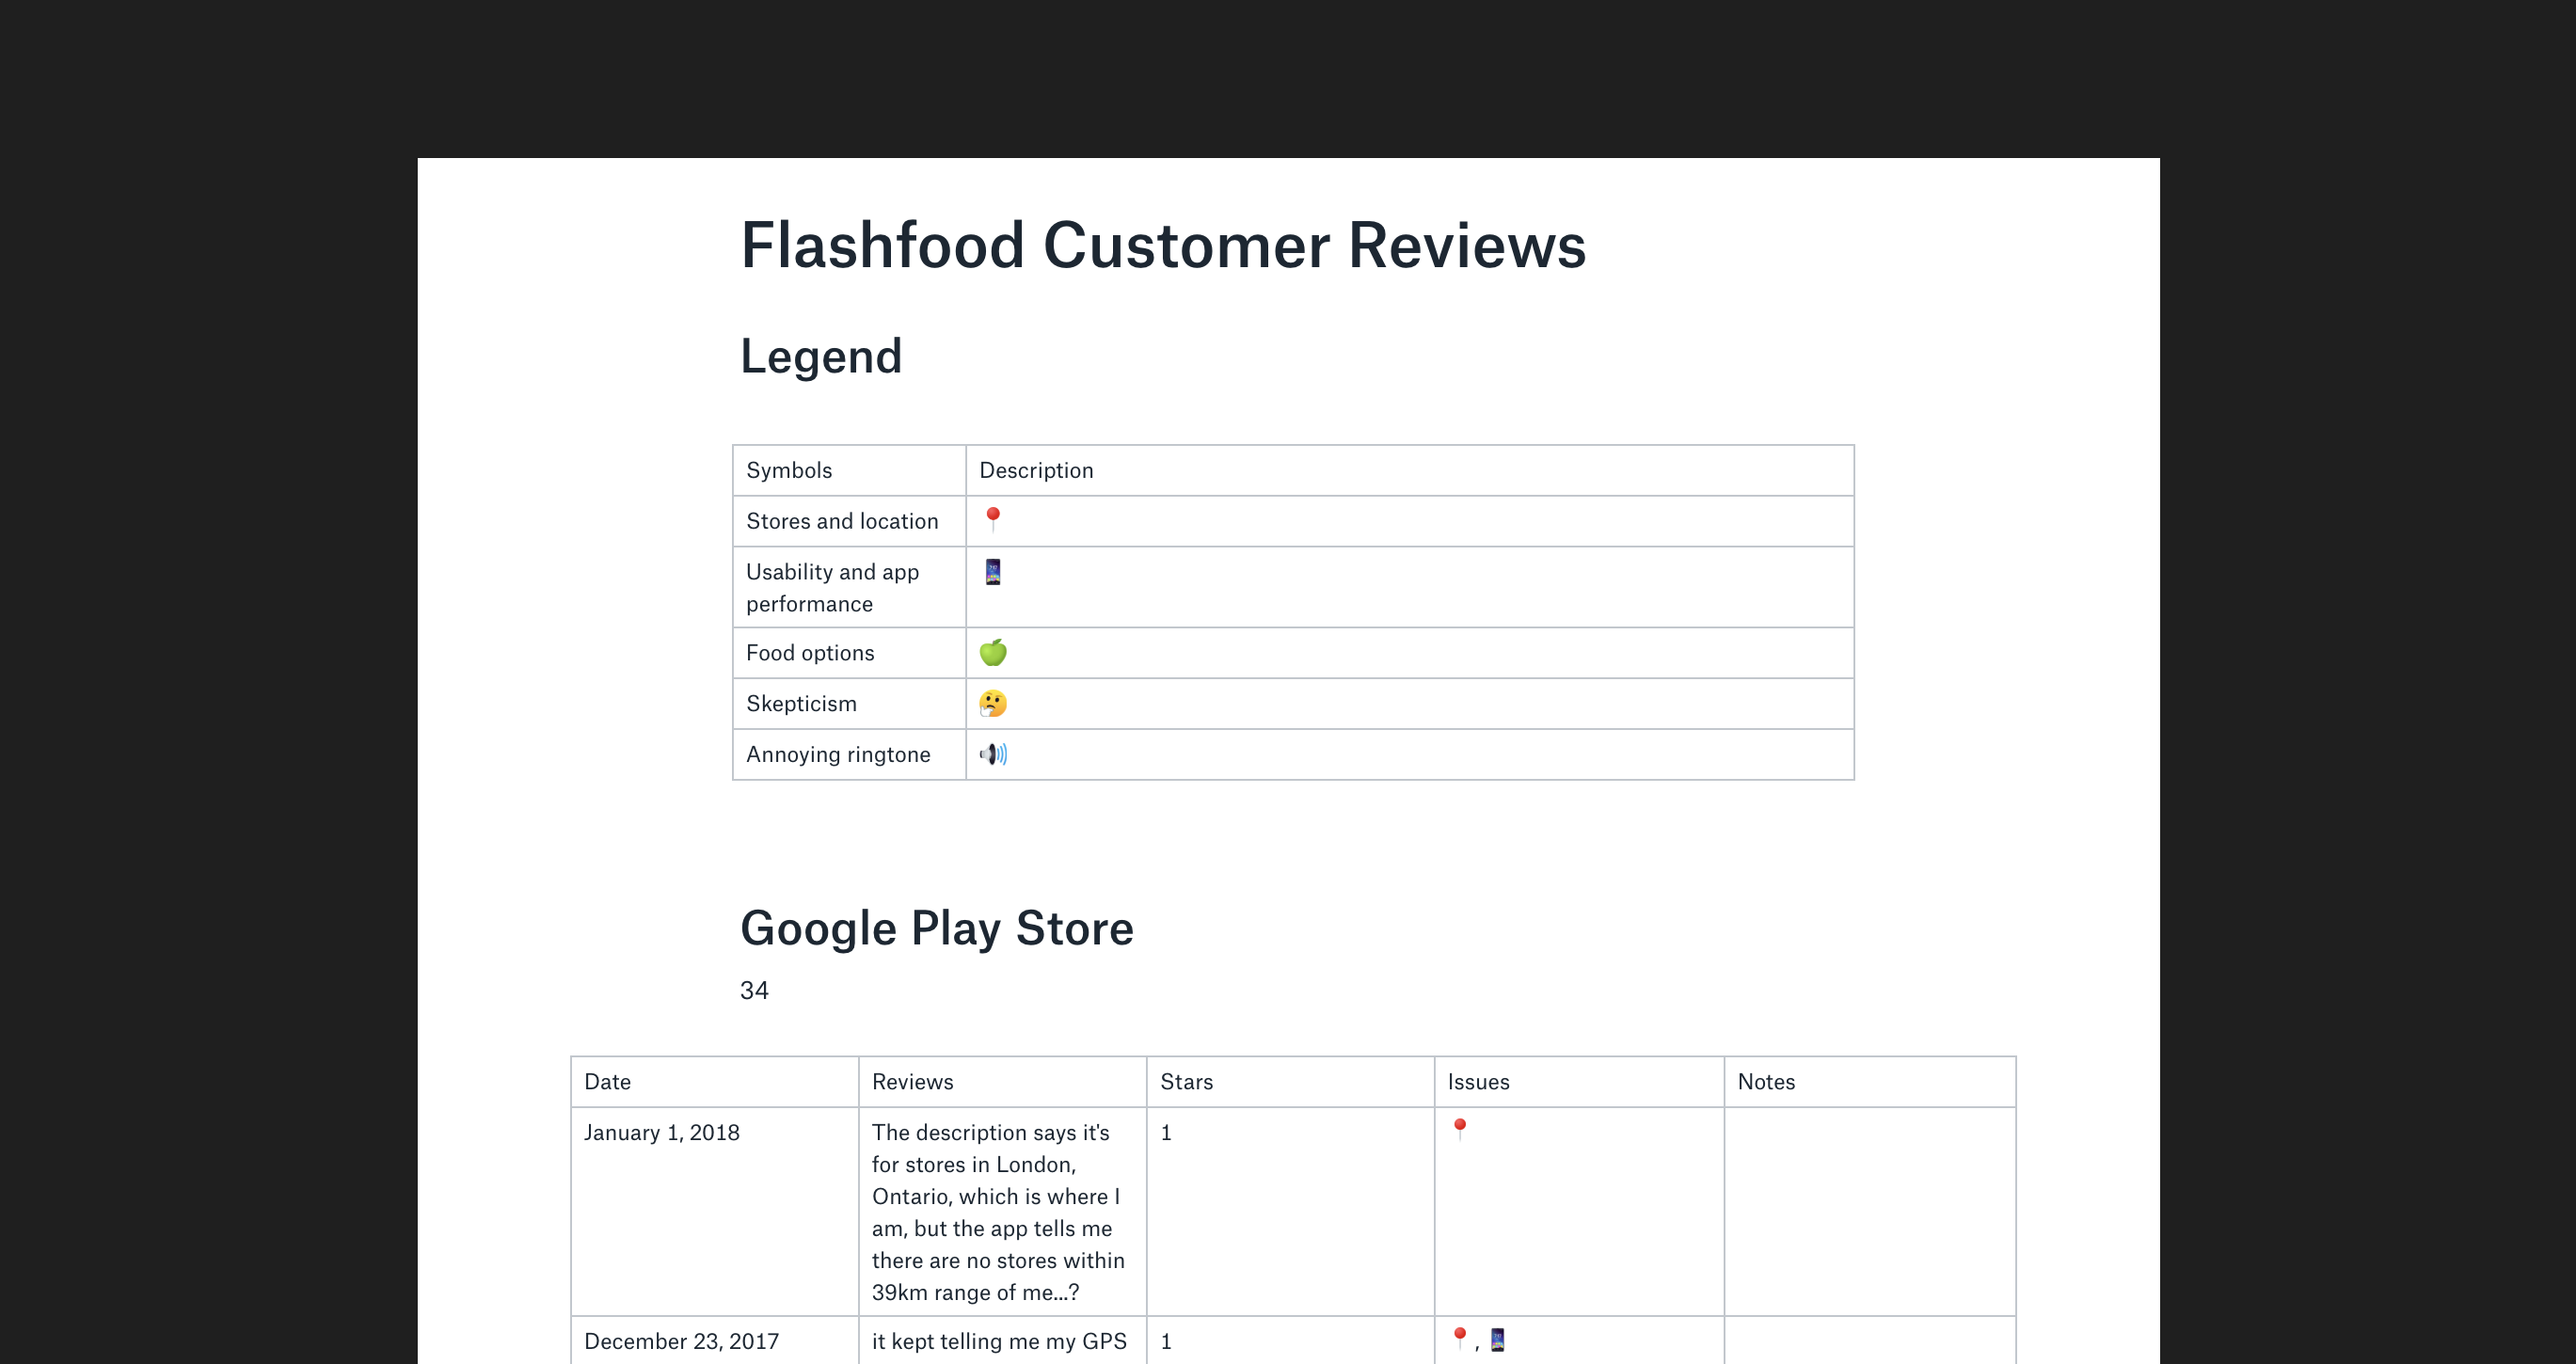 A compiled list of Flashfood App customer reviews